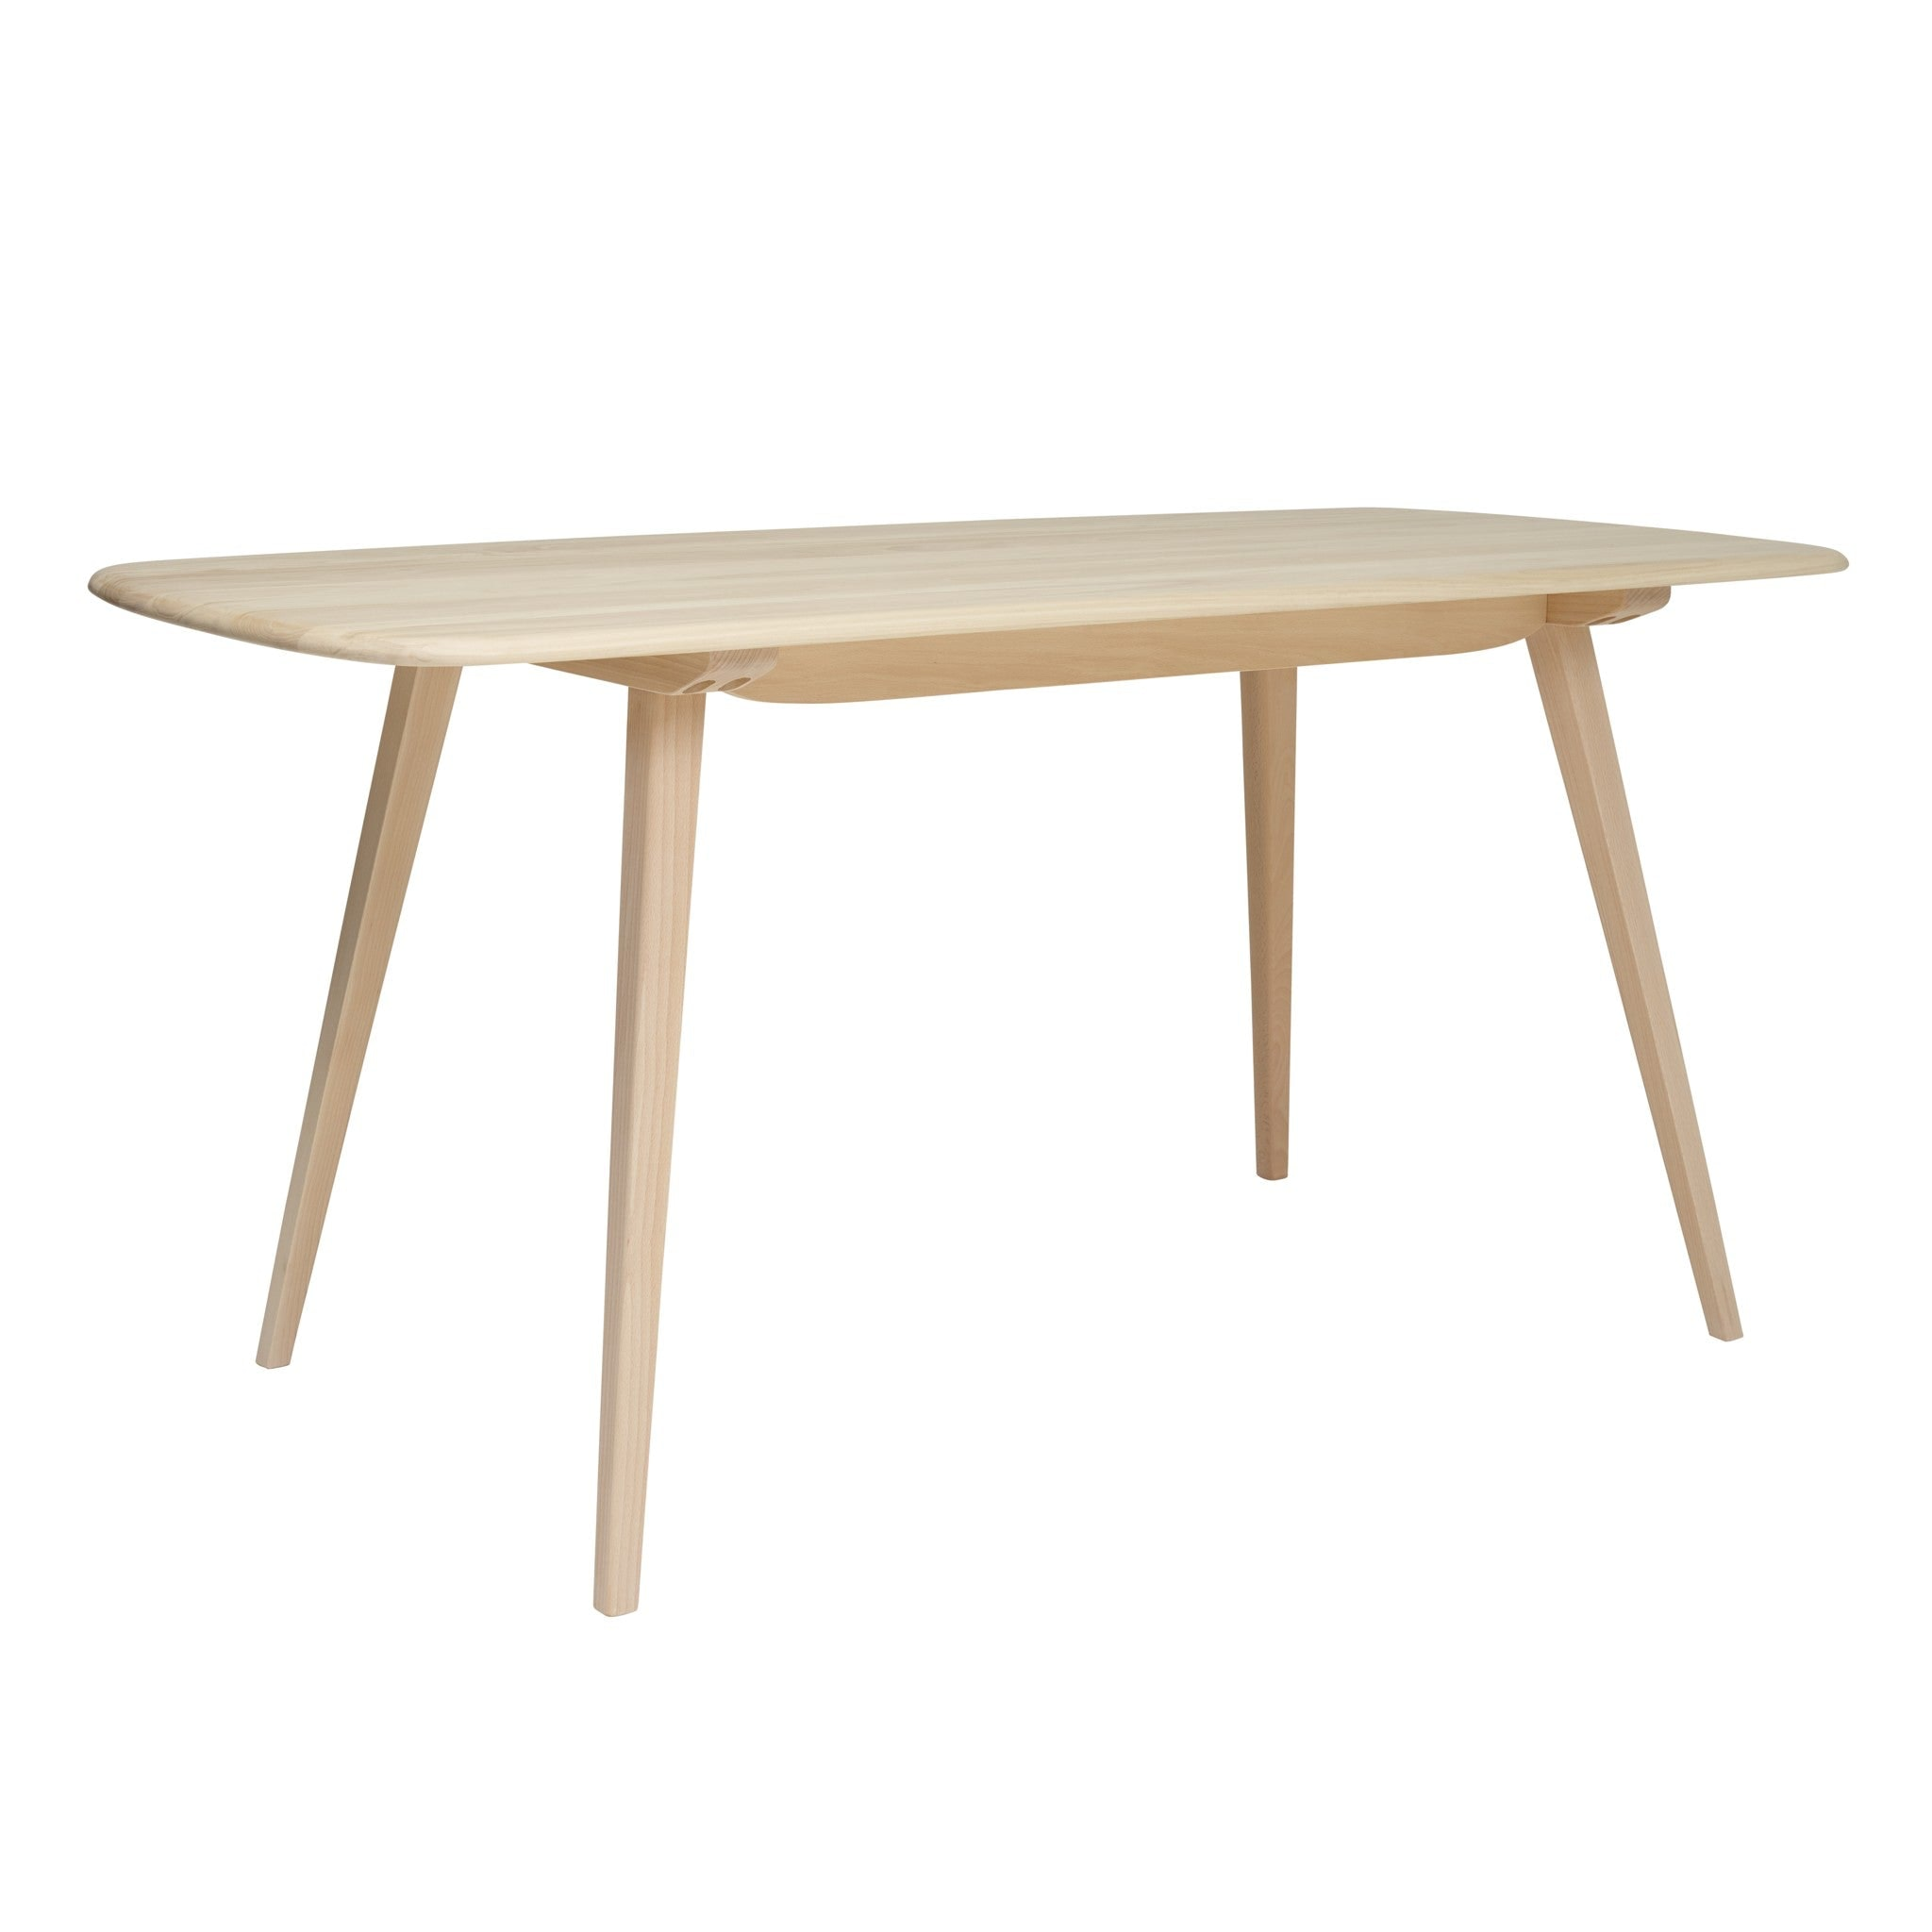 Originals Plank Table by Ercol